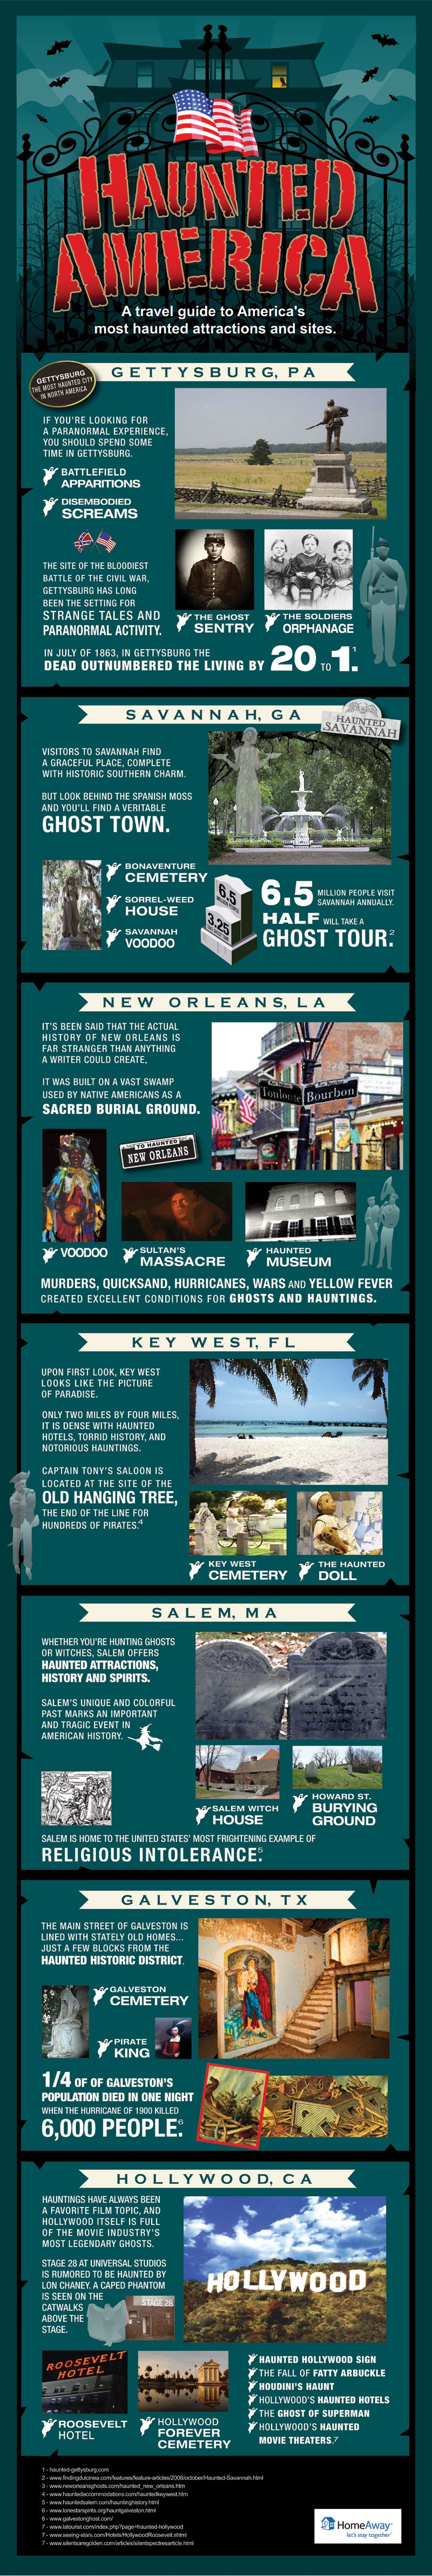 Haunted America Infographic - Destinations for a Thrill from HomeAway